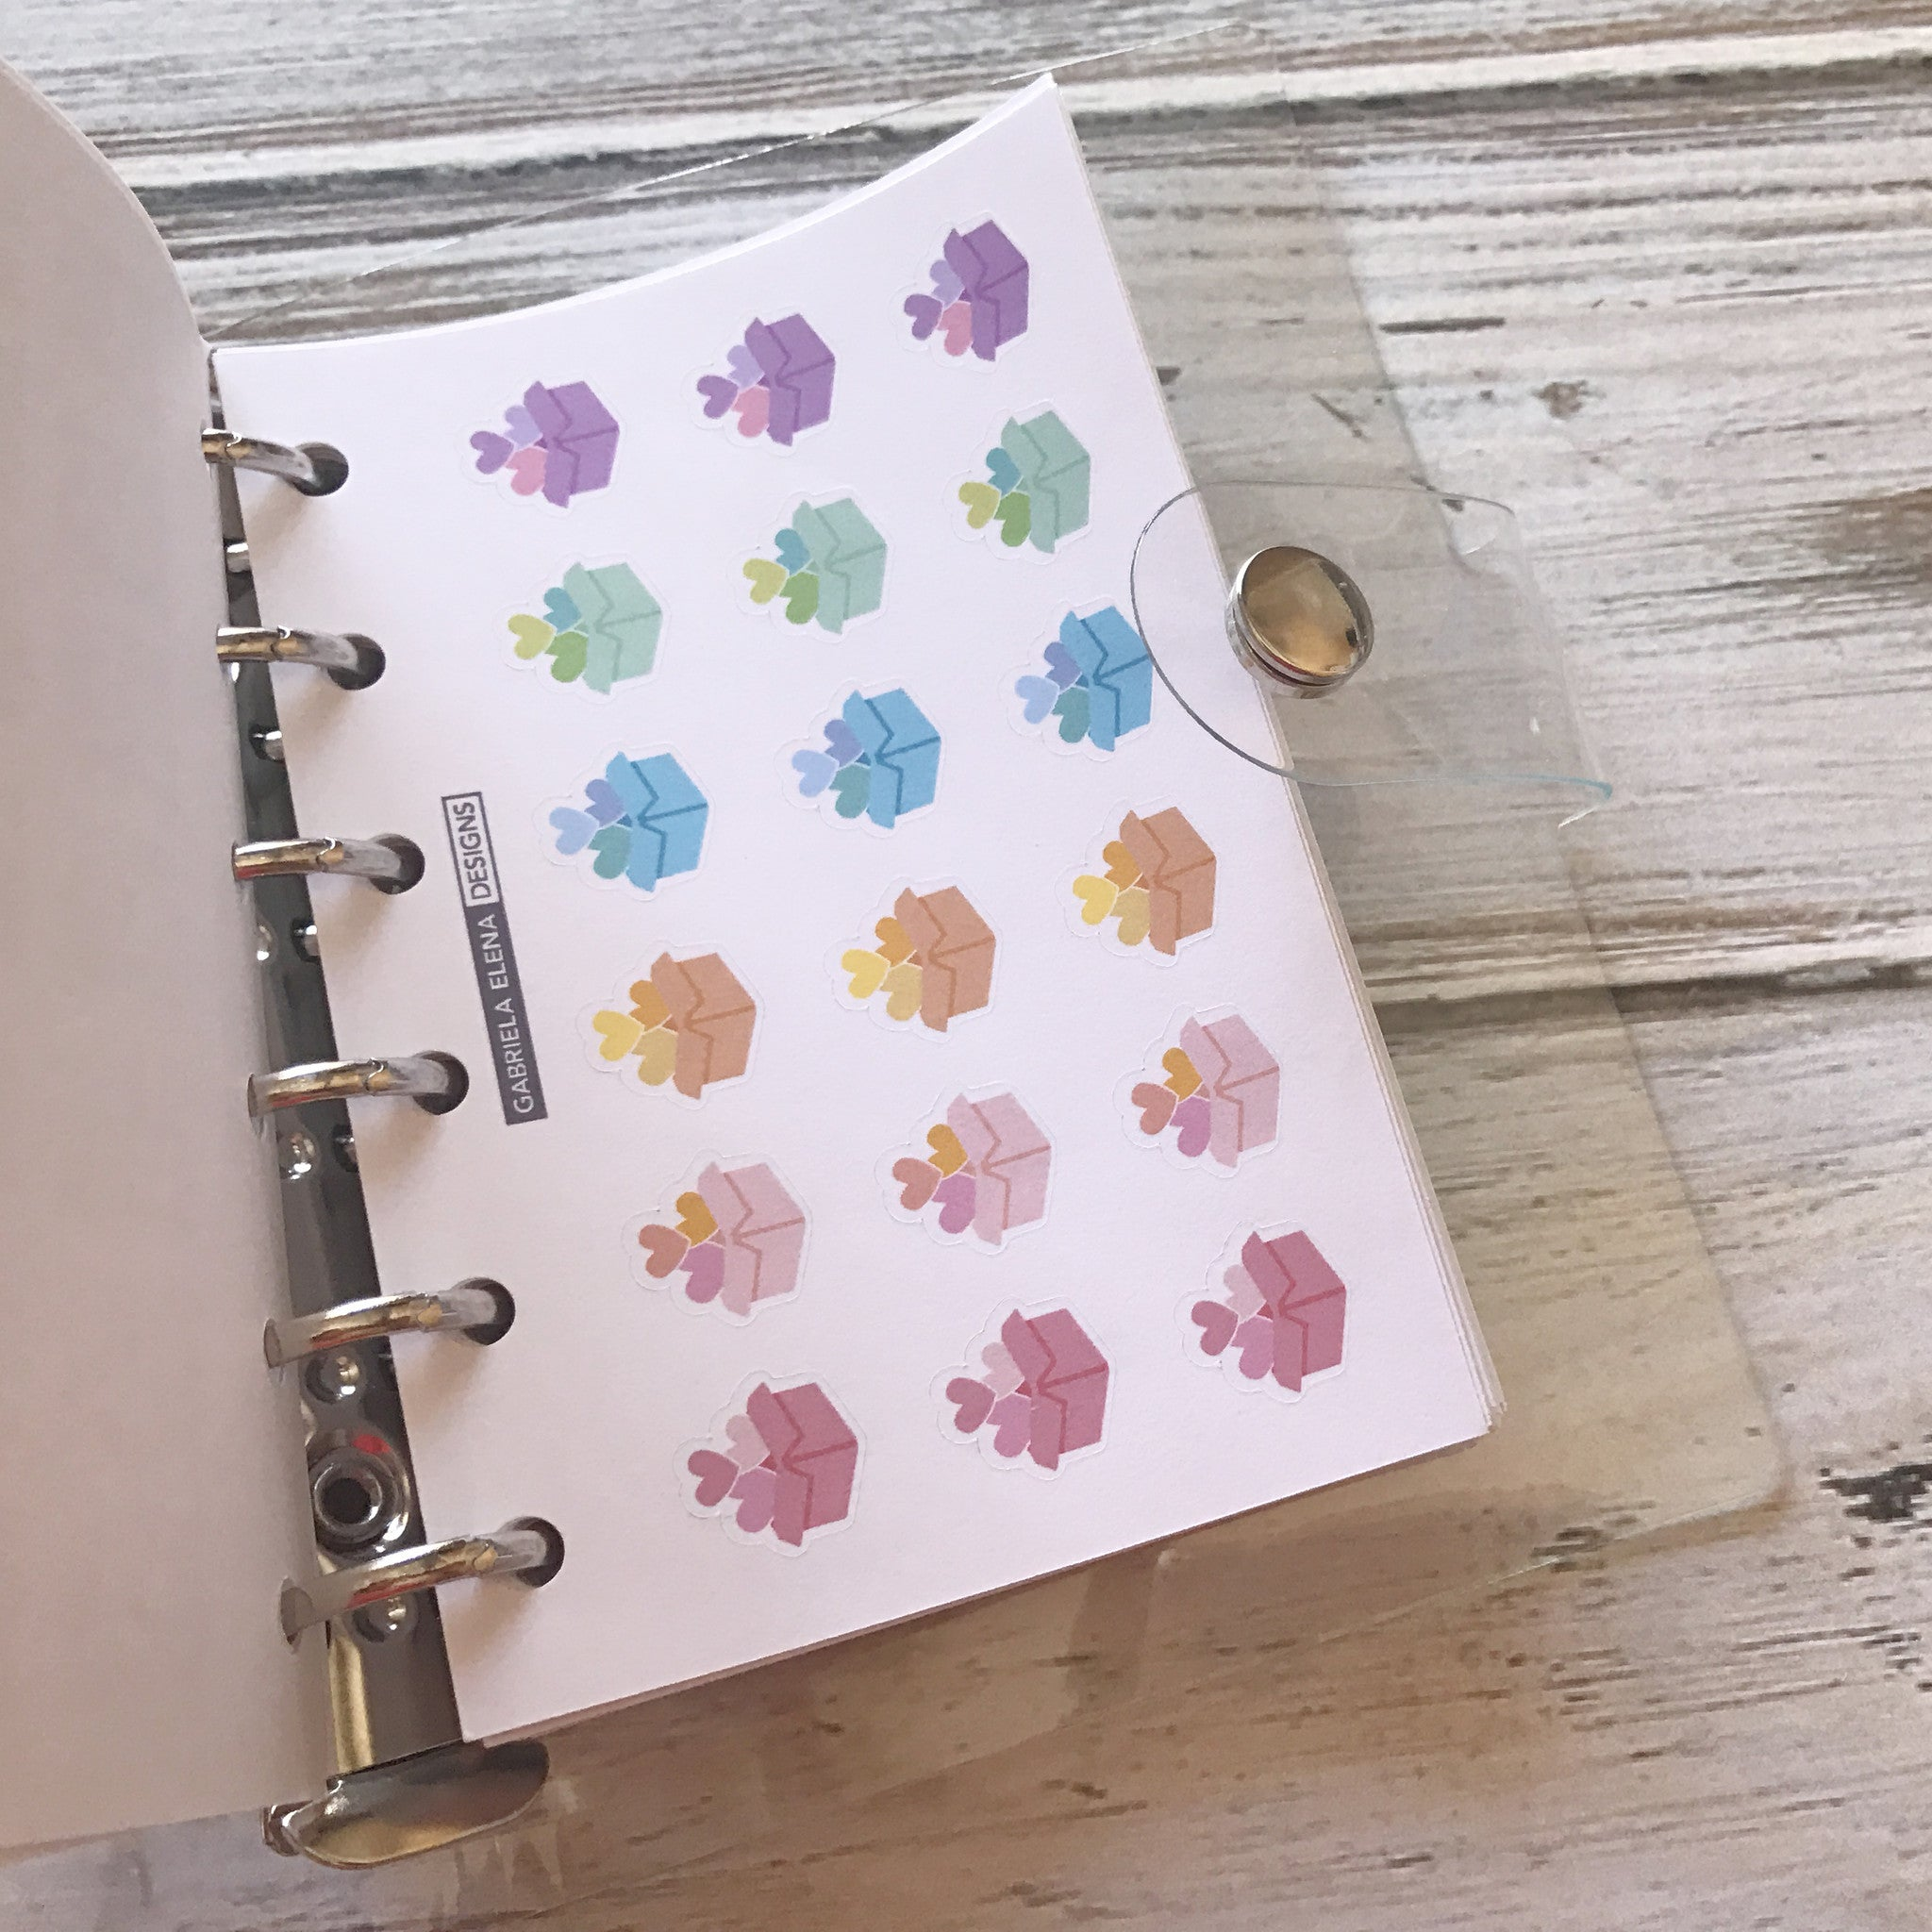 Decorative Favorites // Sticker Book Inserts